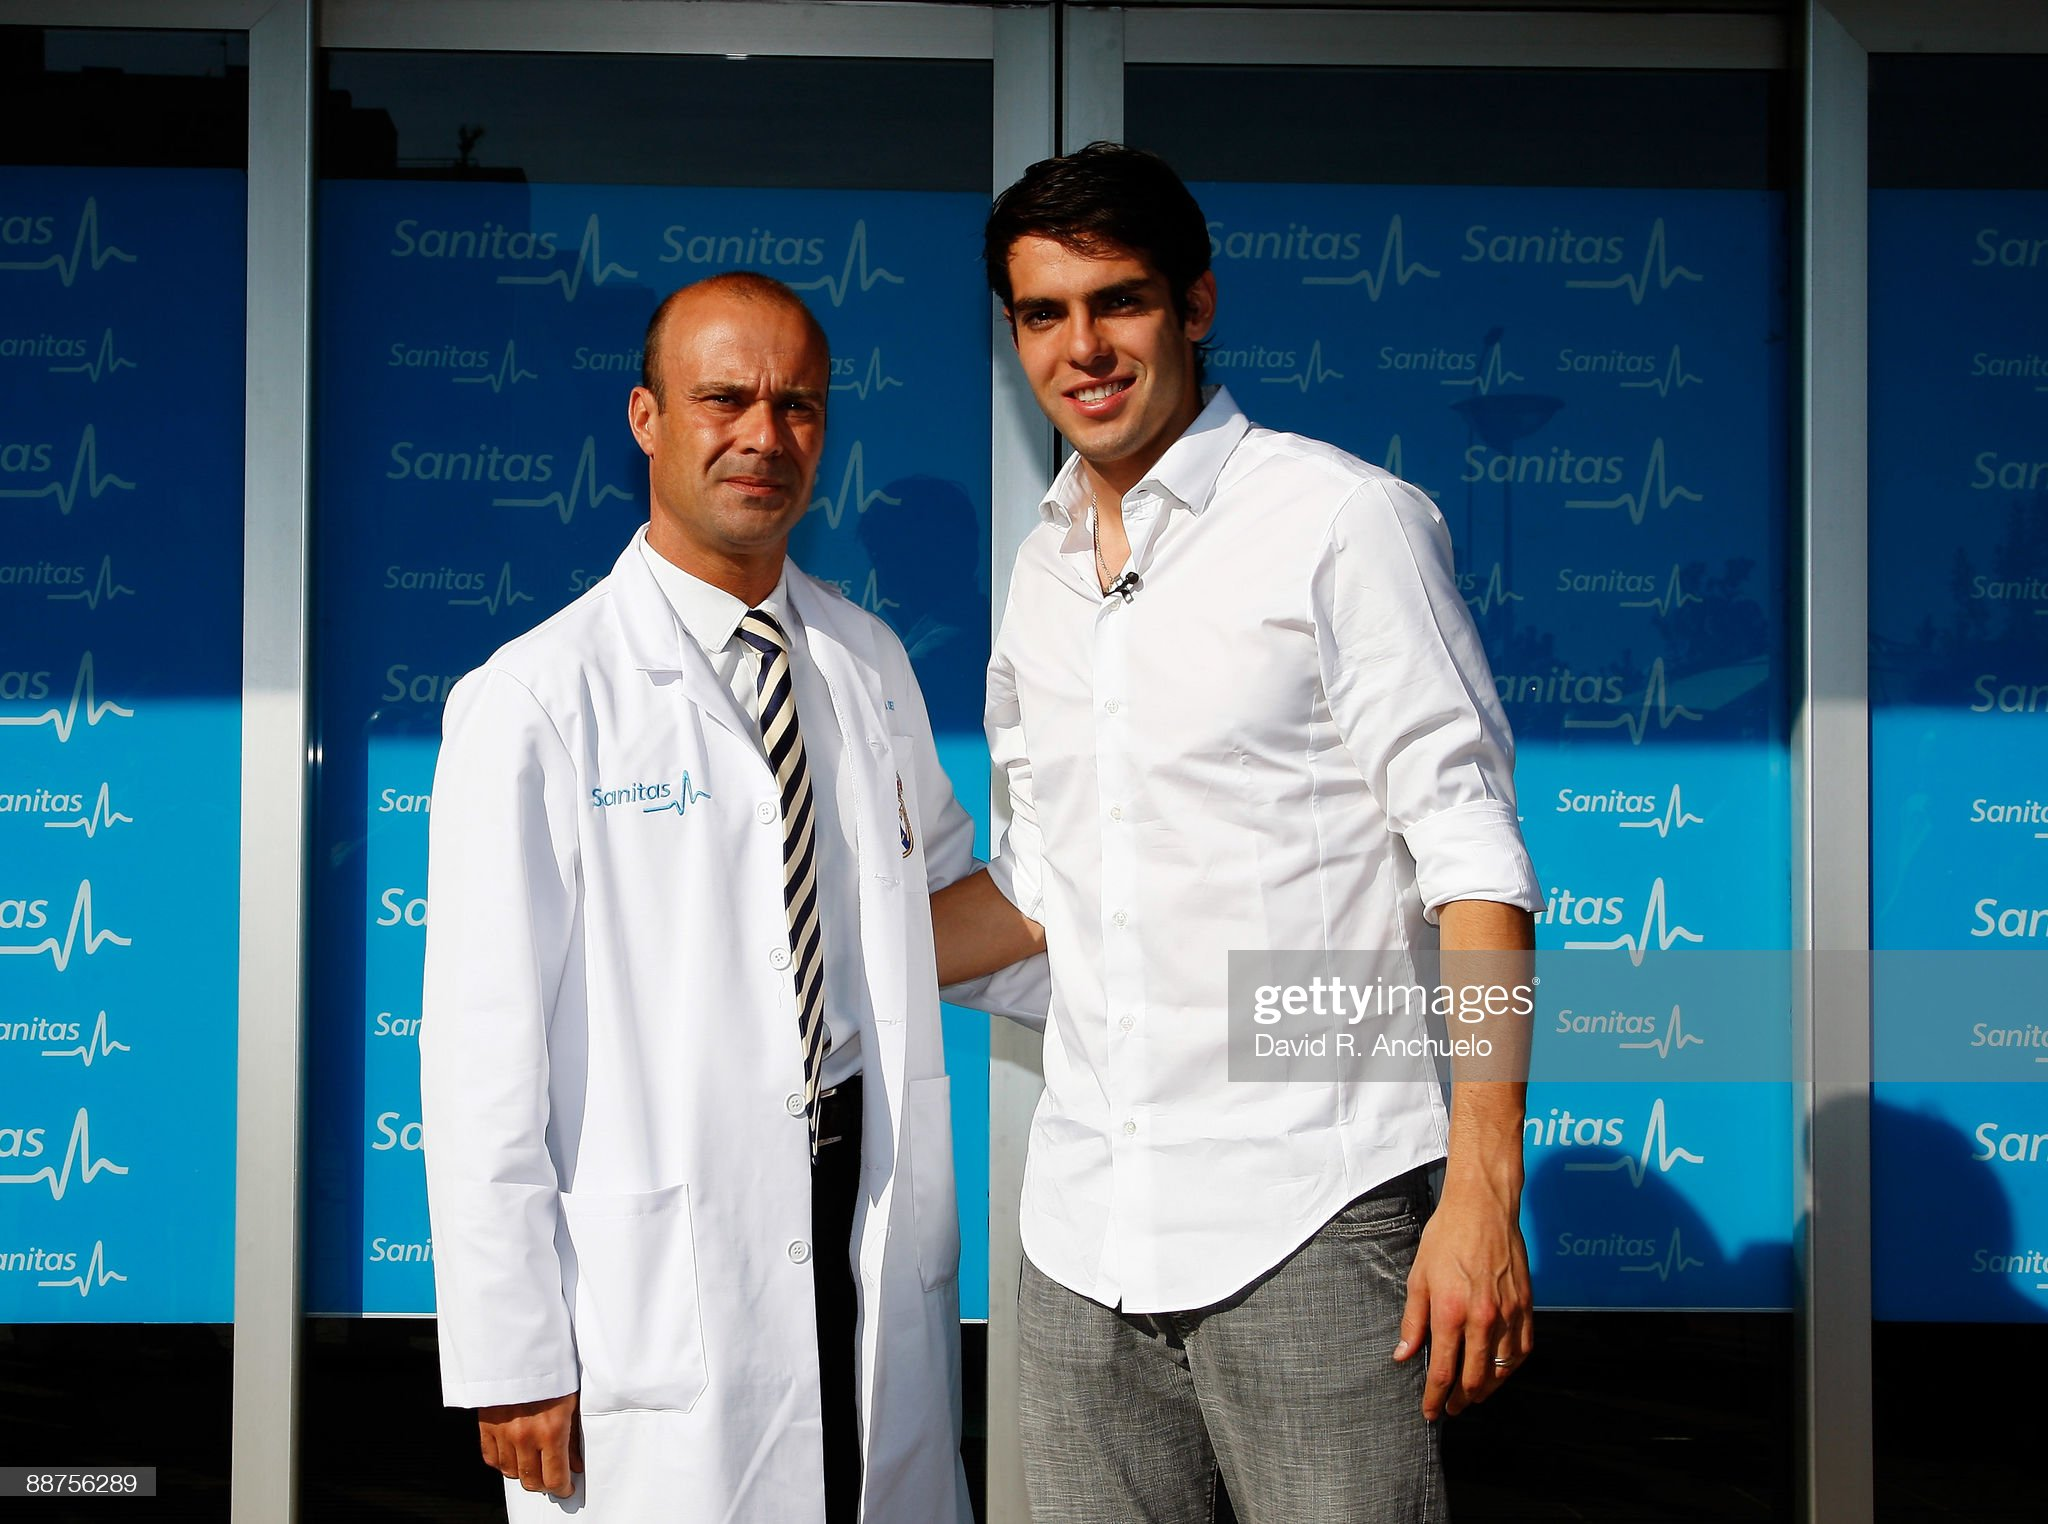 ¿Cuánto mide Carlos Díez? Kaka-attends-a-real-madrid-medical-before-his-official-presentation-picture-id88756289?s=2048x2048